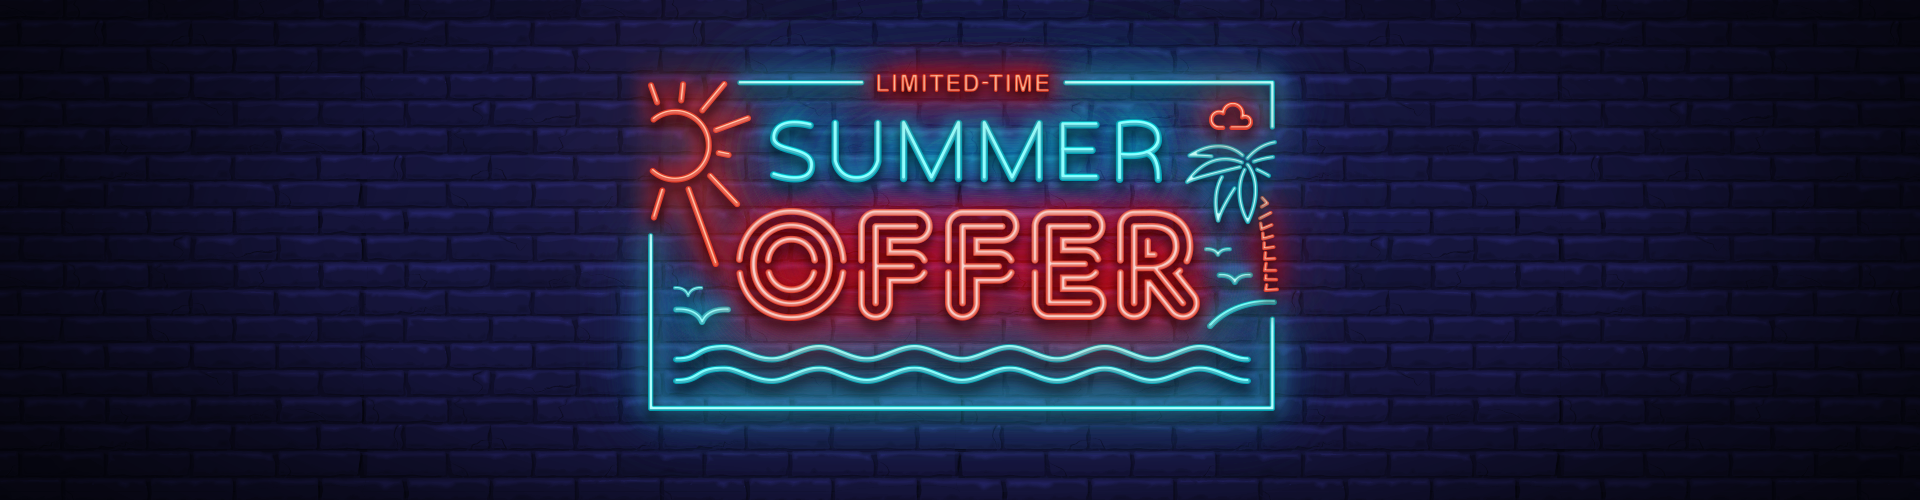 Limited-time summer offer